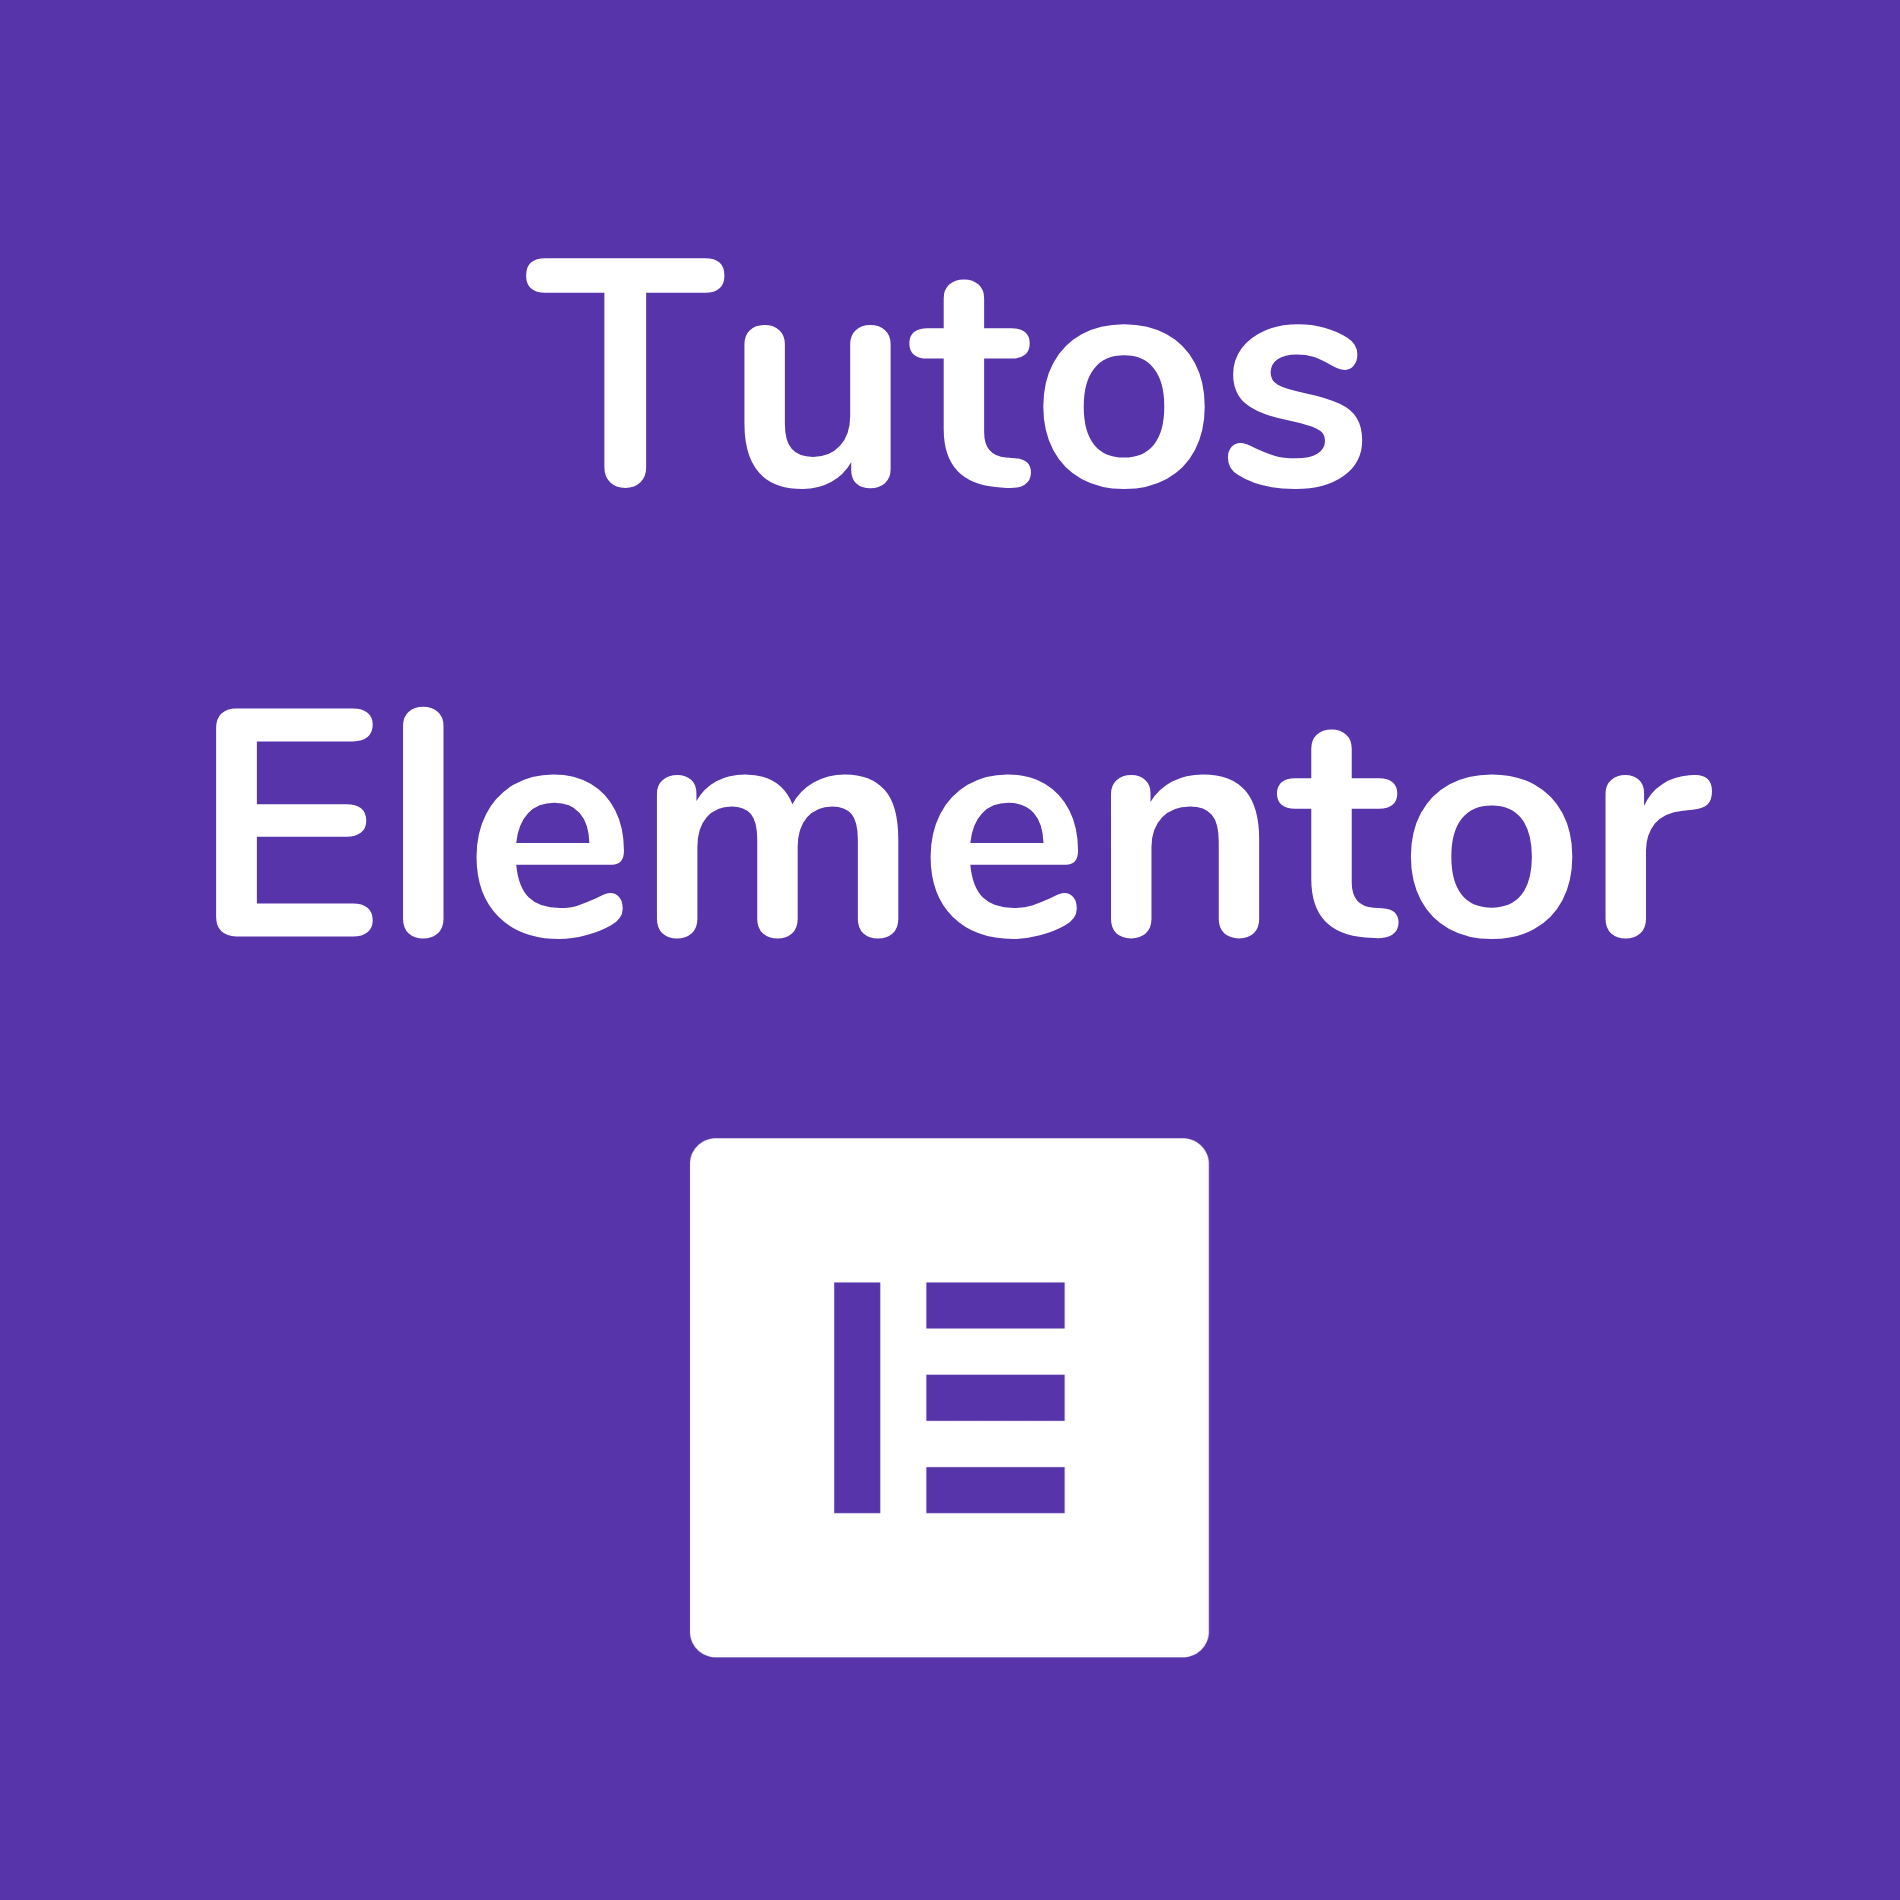 tutos-elementor-new